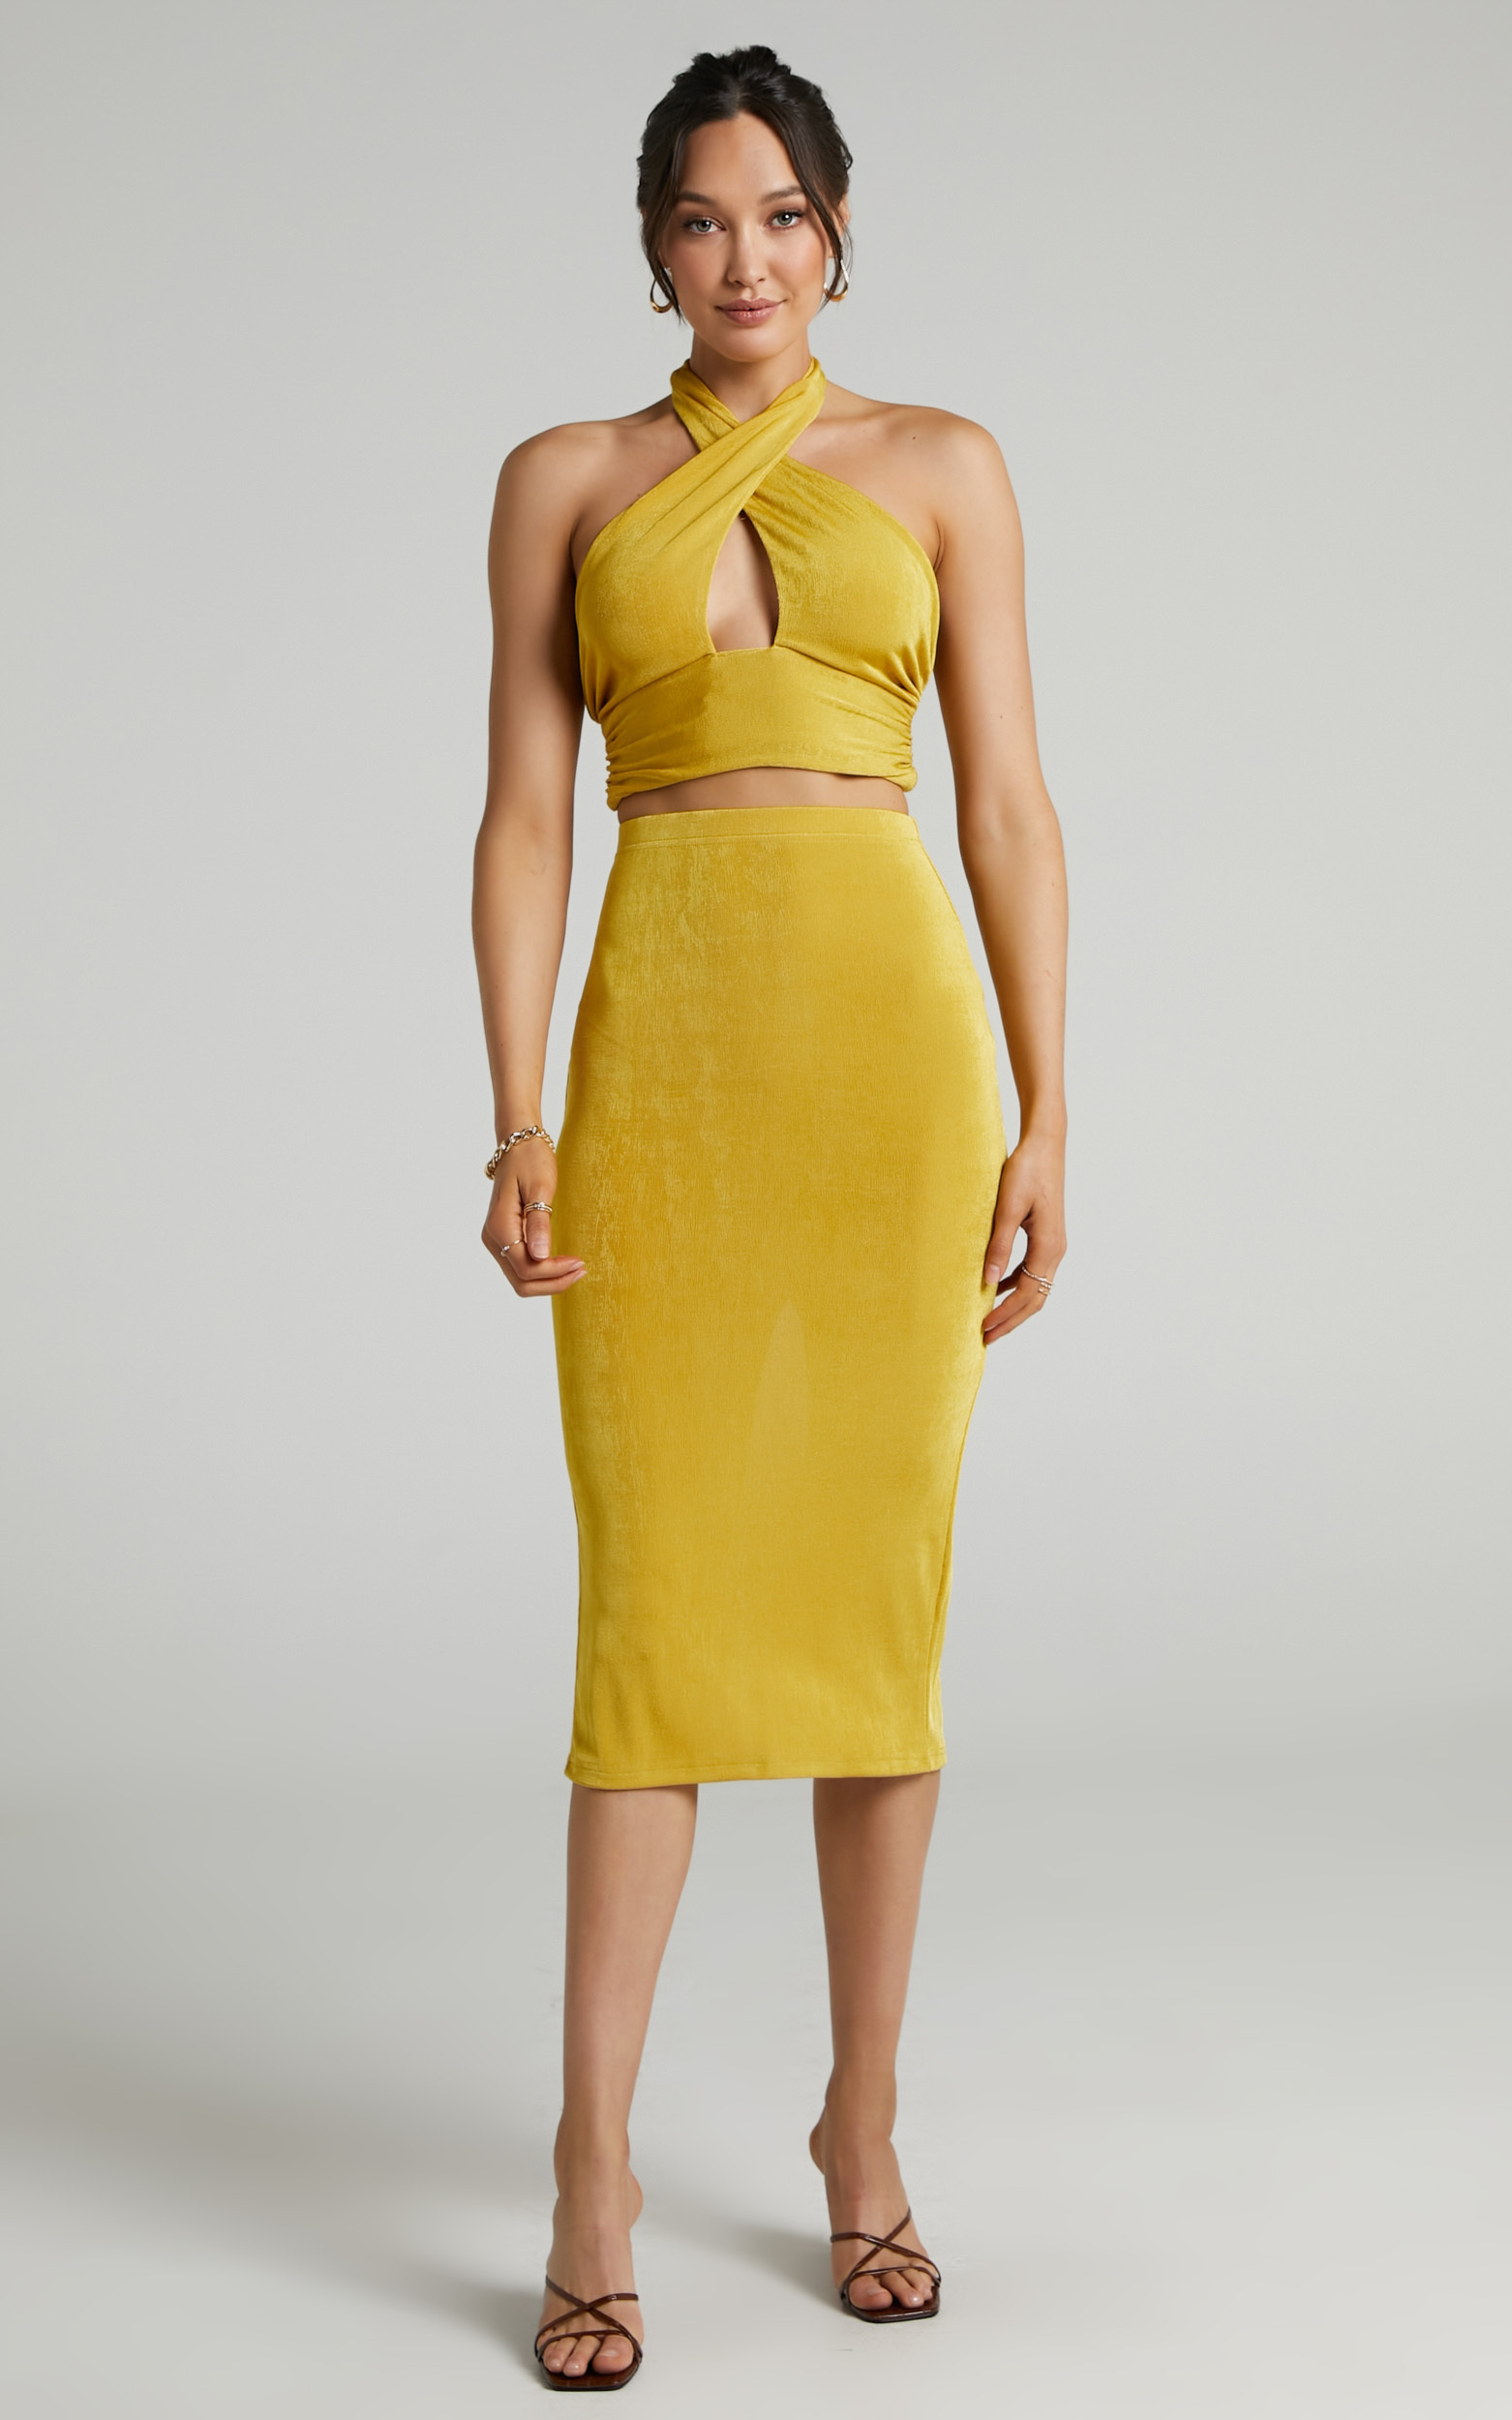 She.Is.Us - On Demand Skirt in Butterscotch - L, YEL1, hi-res image number null